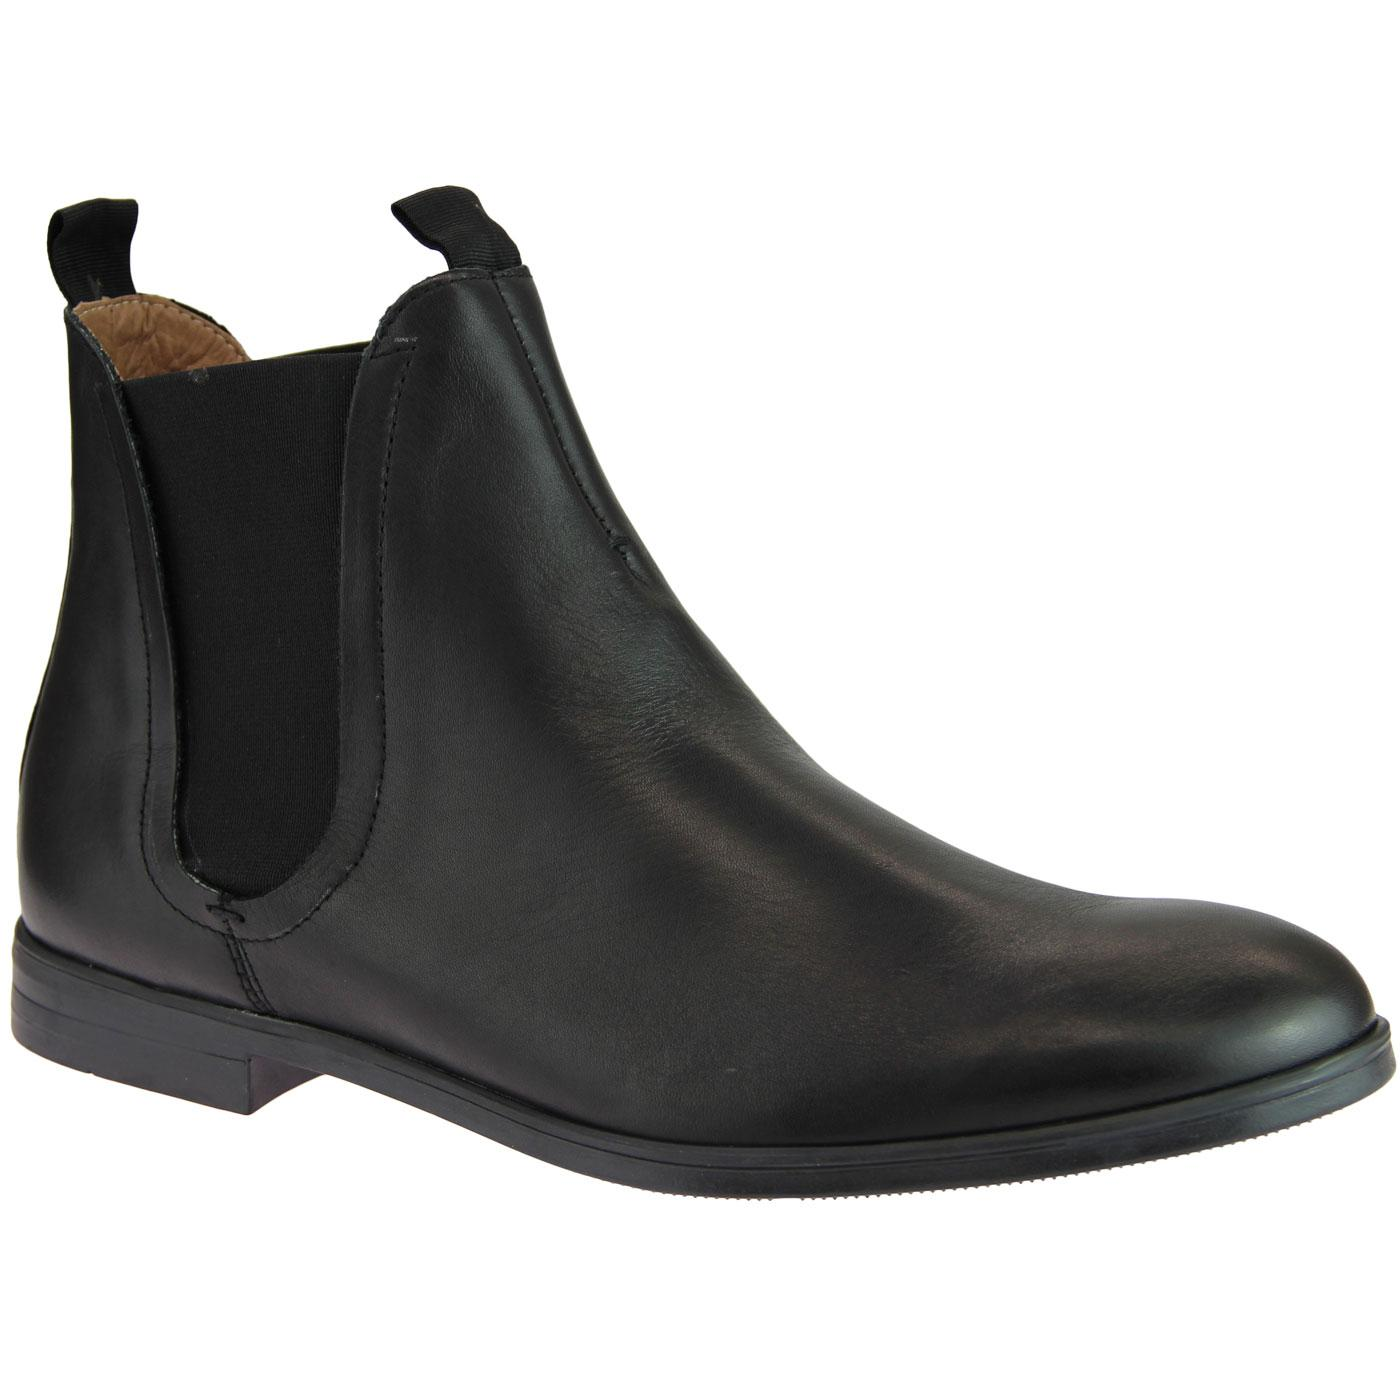 Atherstone HUDSON Mod Leather Chelsea Boots BLACK